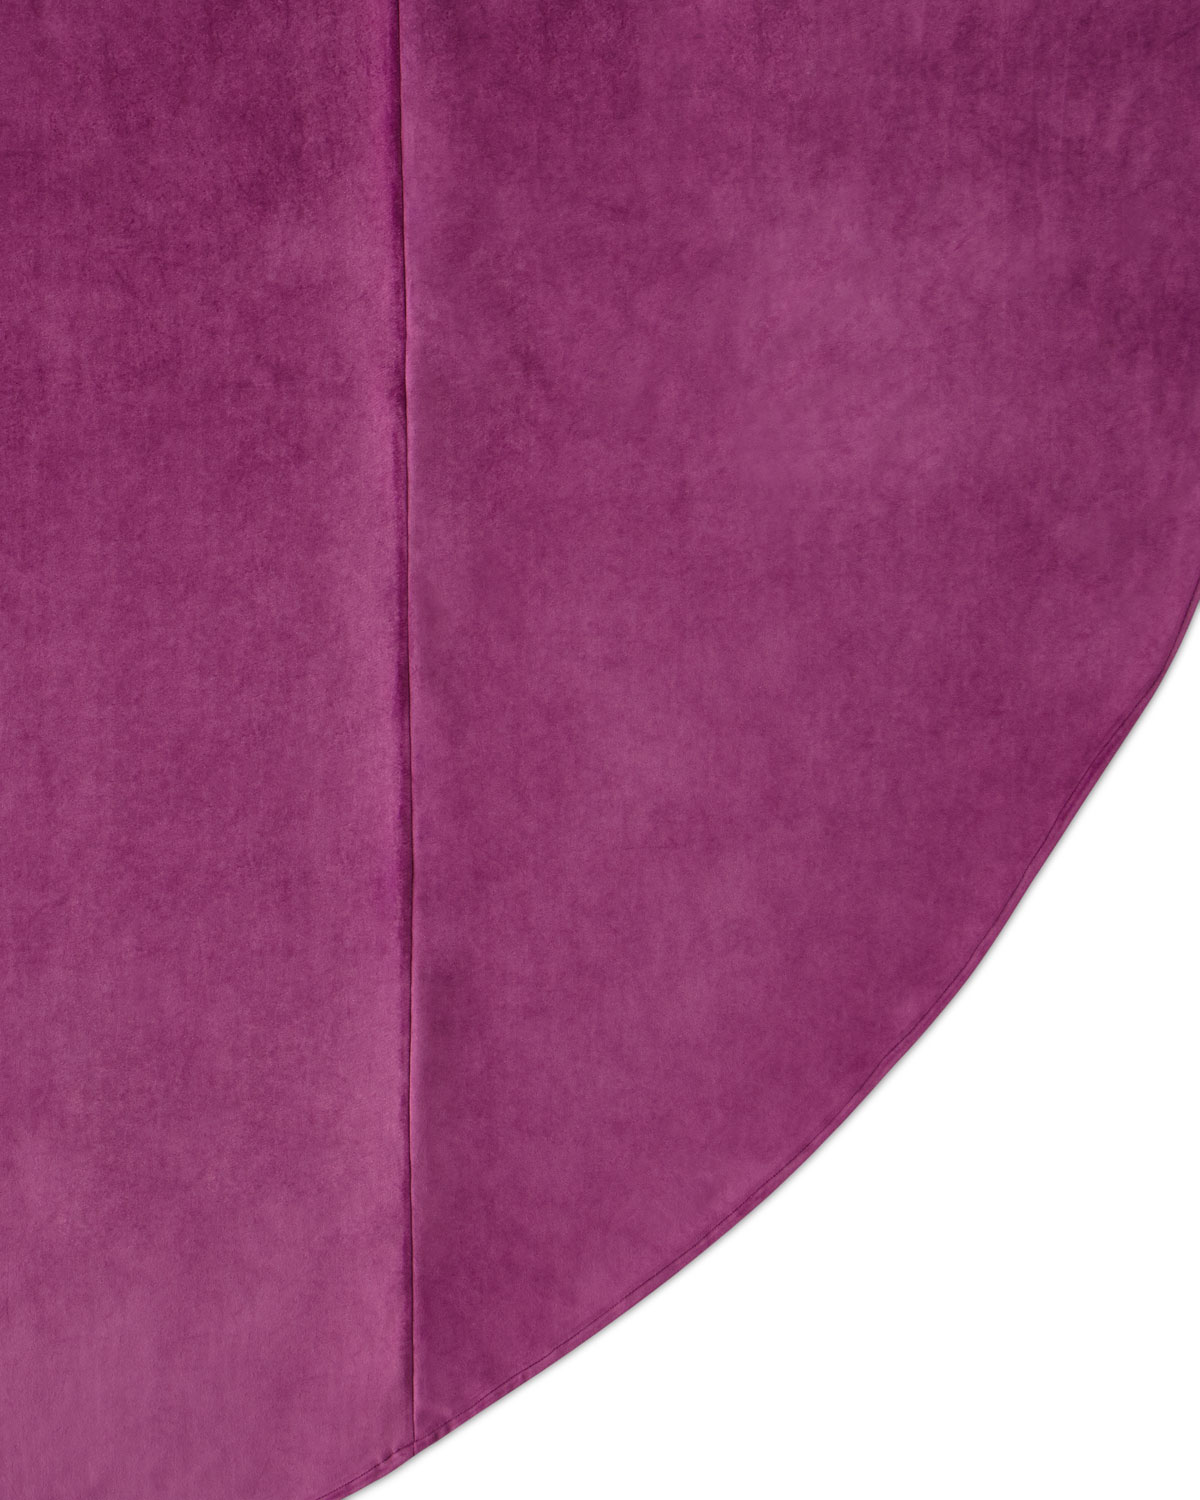 Dian Austin Couture Homeroyal Court Velvet Round Tablecloth